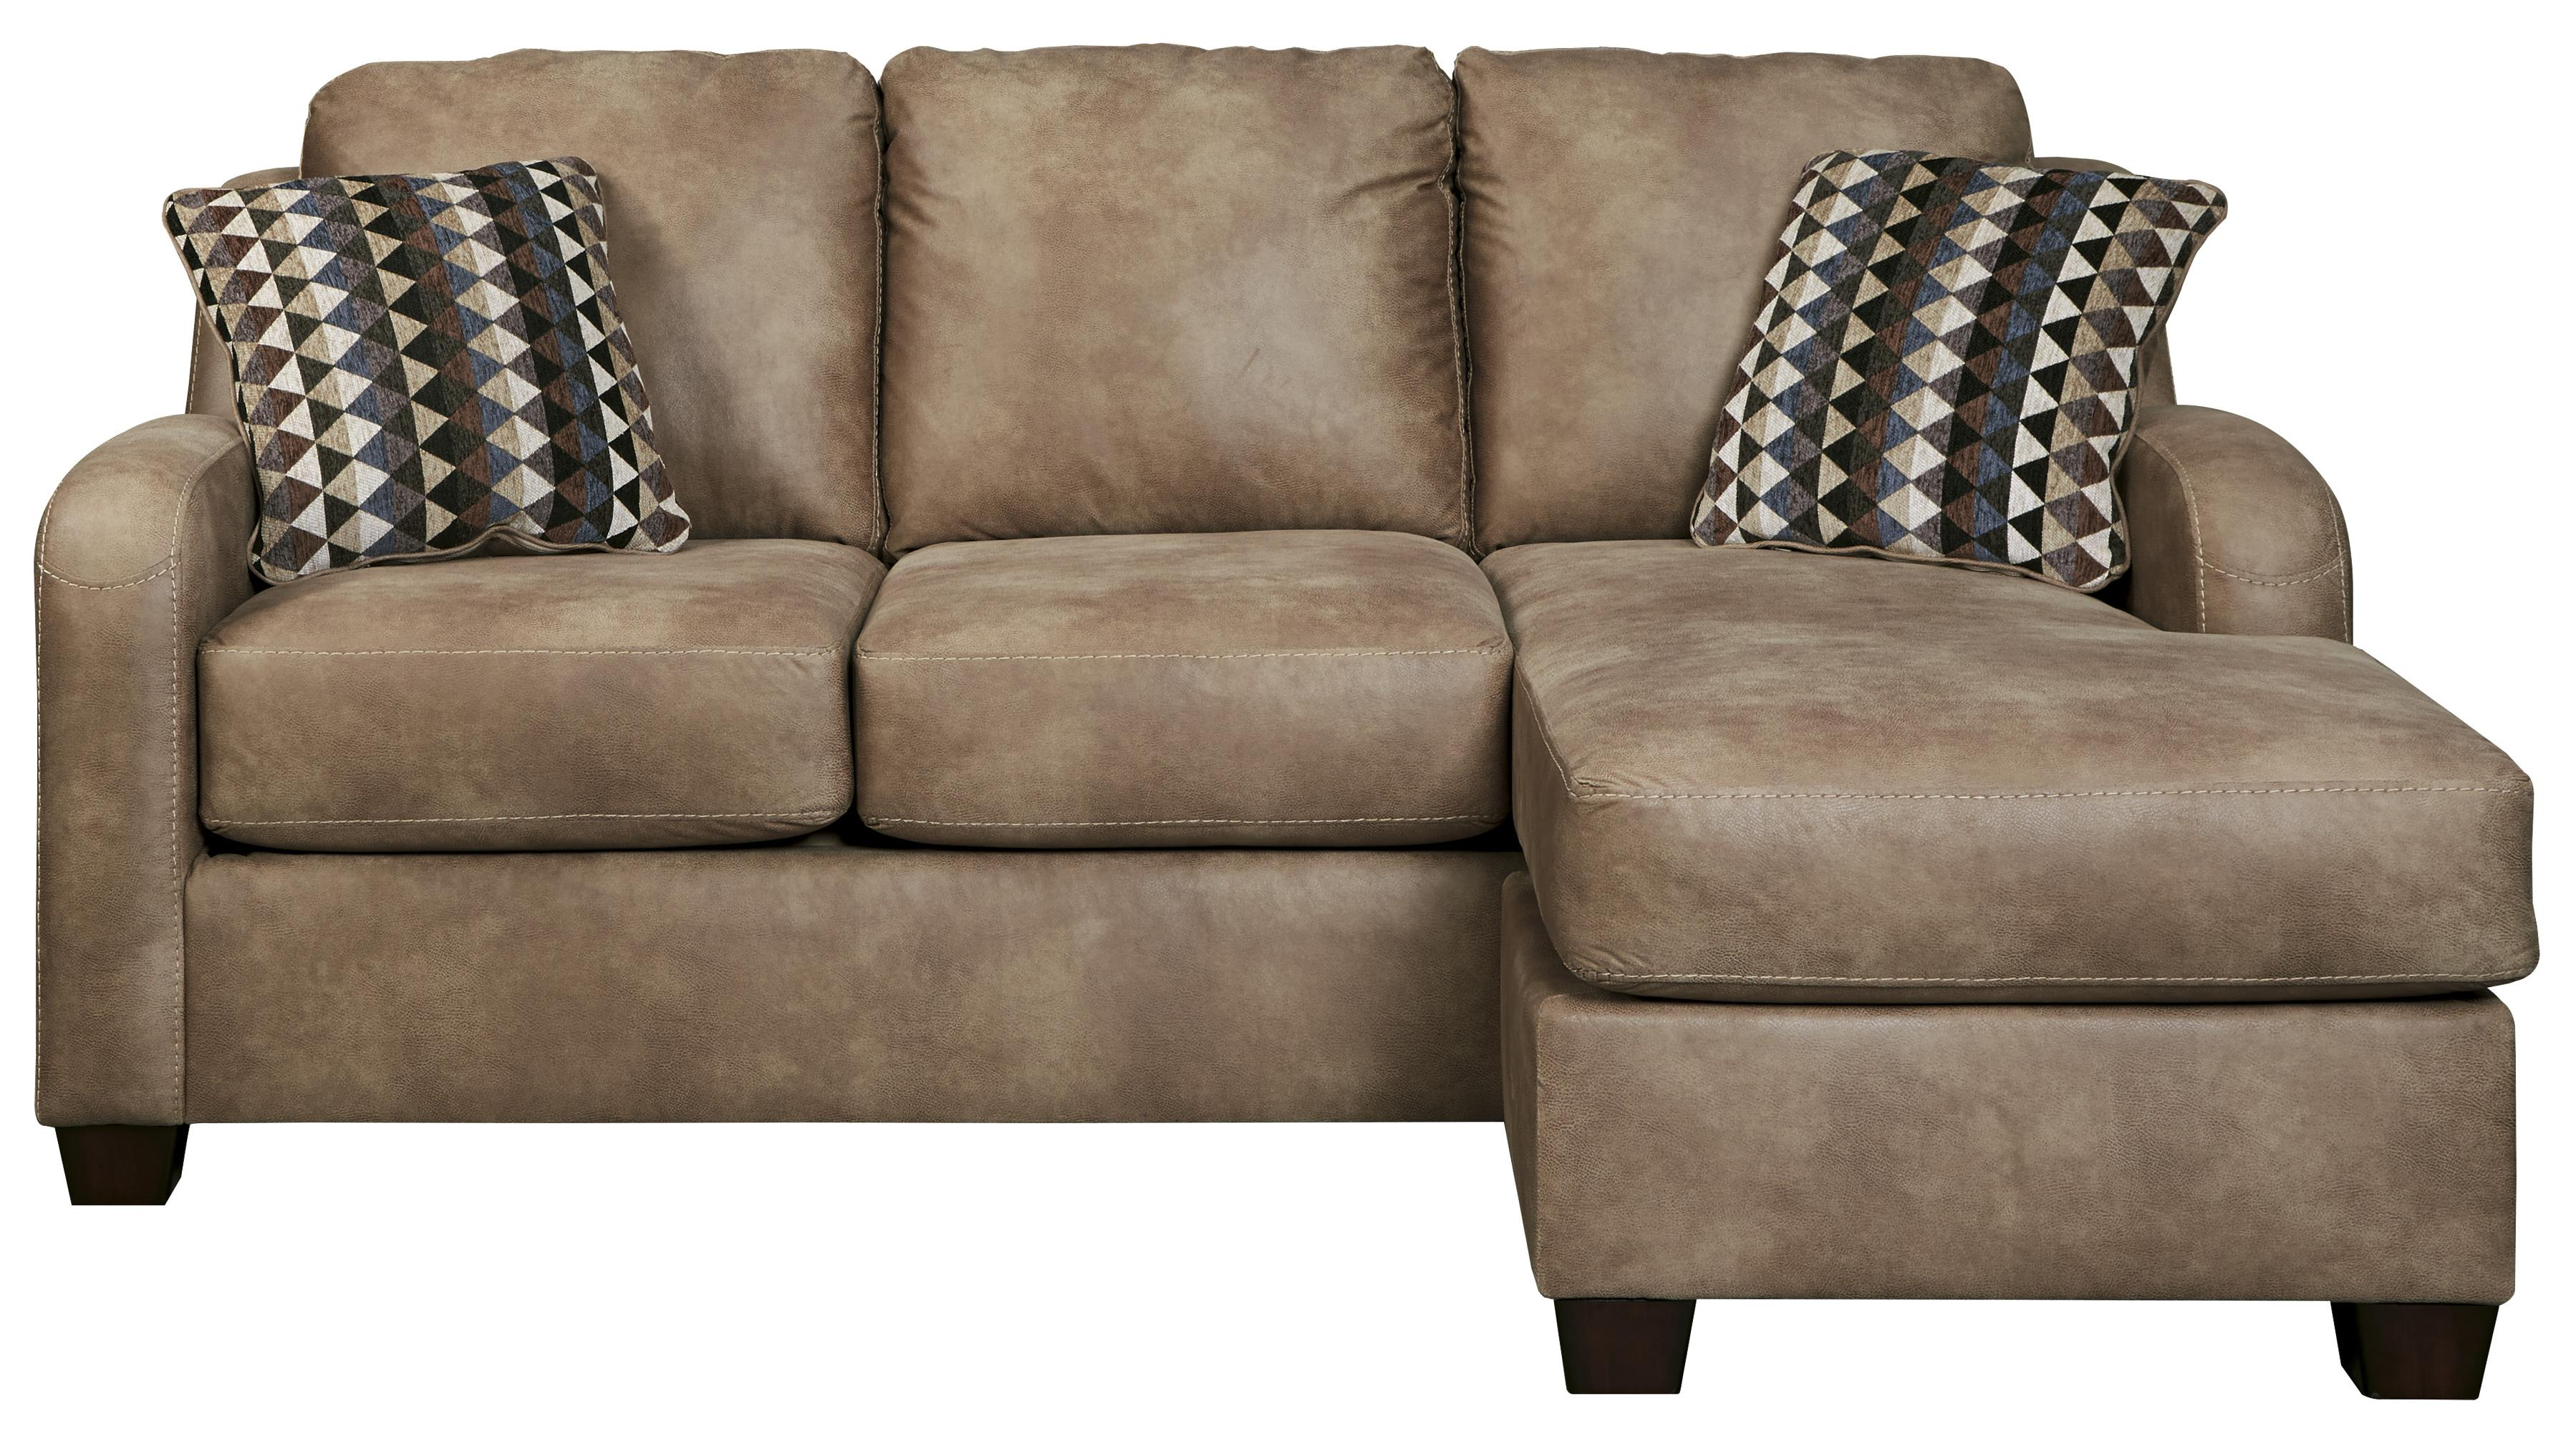 sleeper sofa chaise sectional cindy crawford benchcraft alturo 6000368 queen with